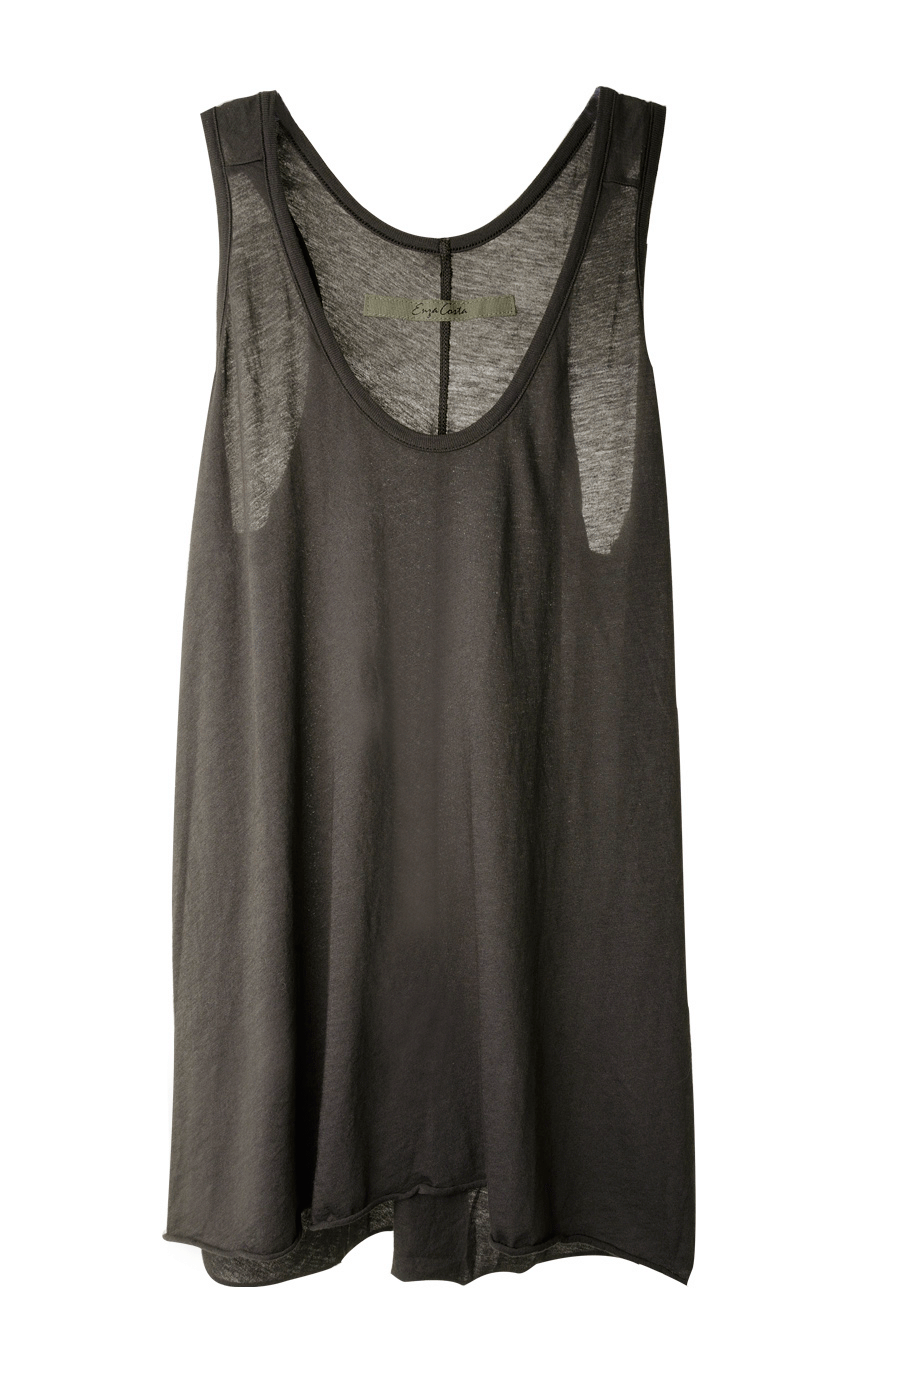 ENZA COSTA LOOSE Racer Lead Tank - CLOTHING | TOPS | PRET-A-BEAUTE.COM